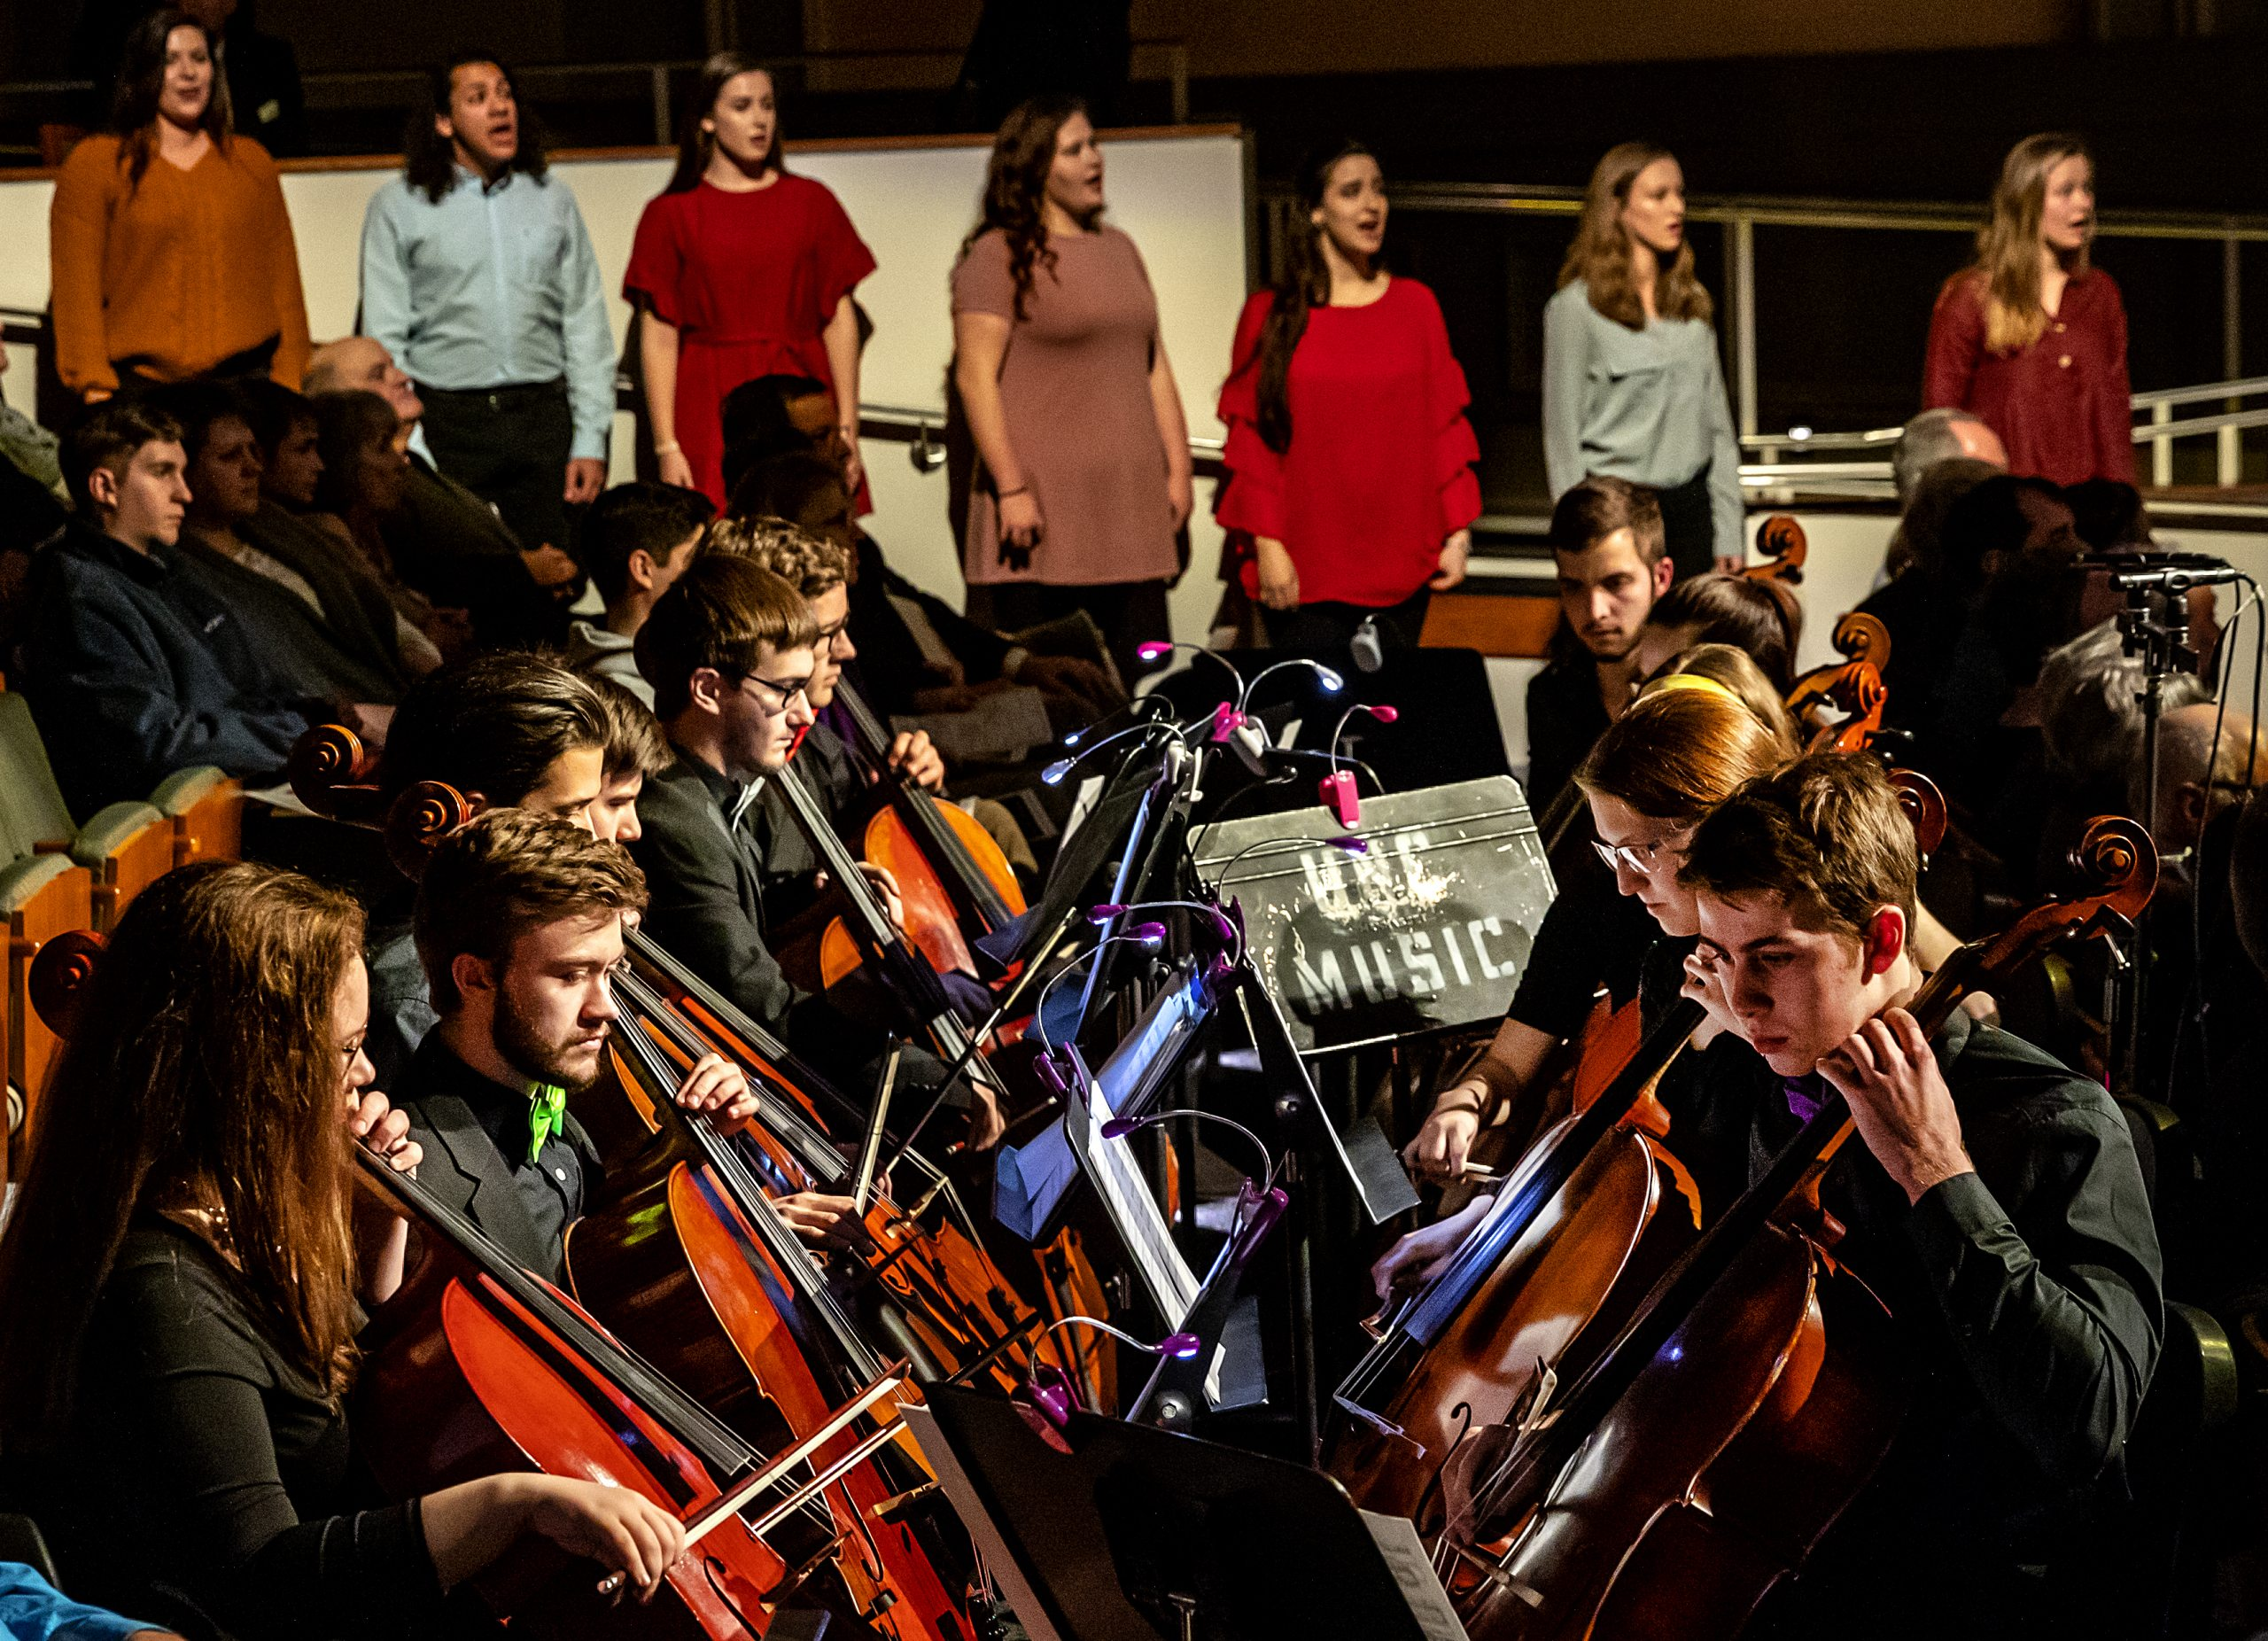 Musicians from the Department of music play their cellos during the Spectrum Concert. In the background, a choir stands side-by-side, singing.